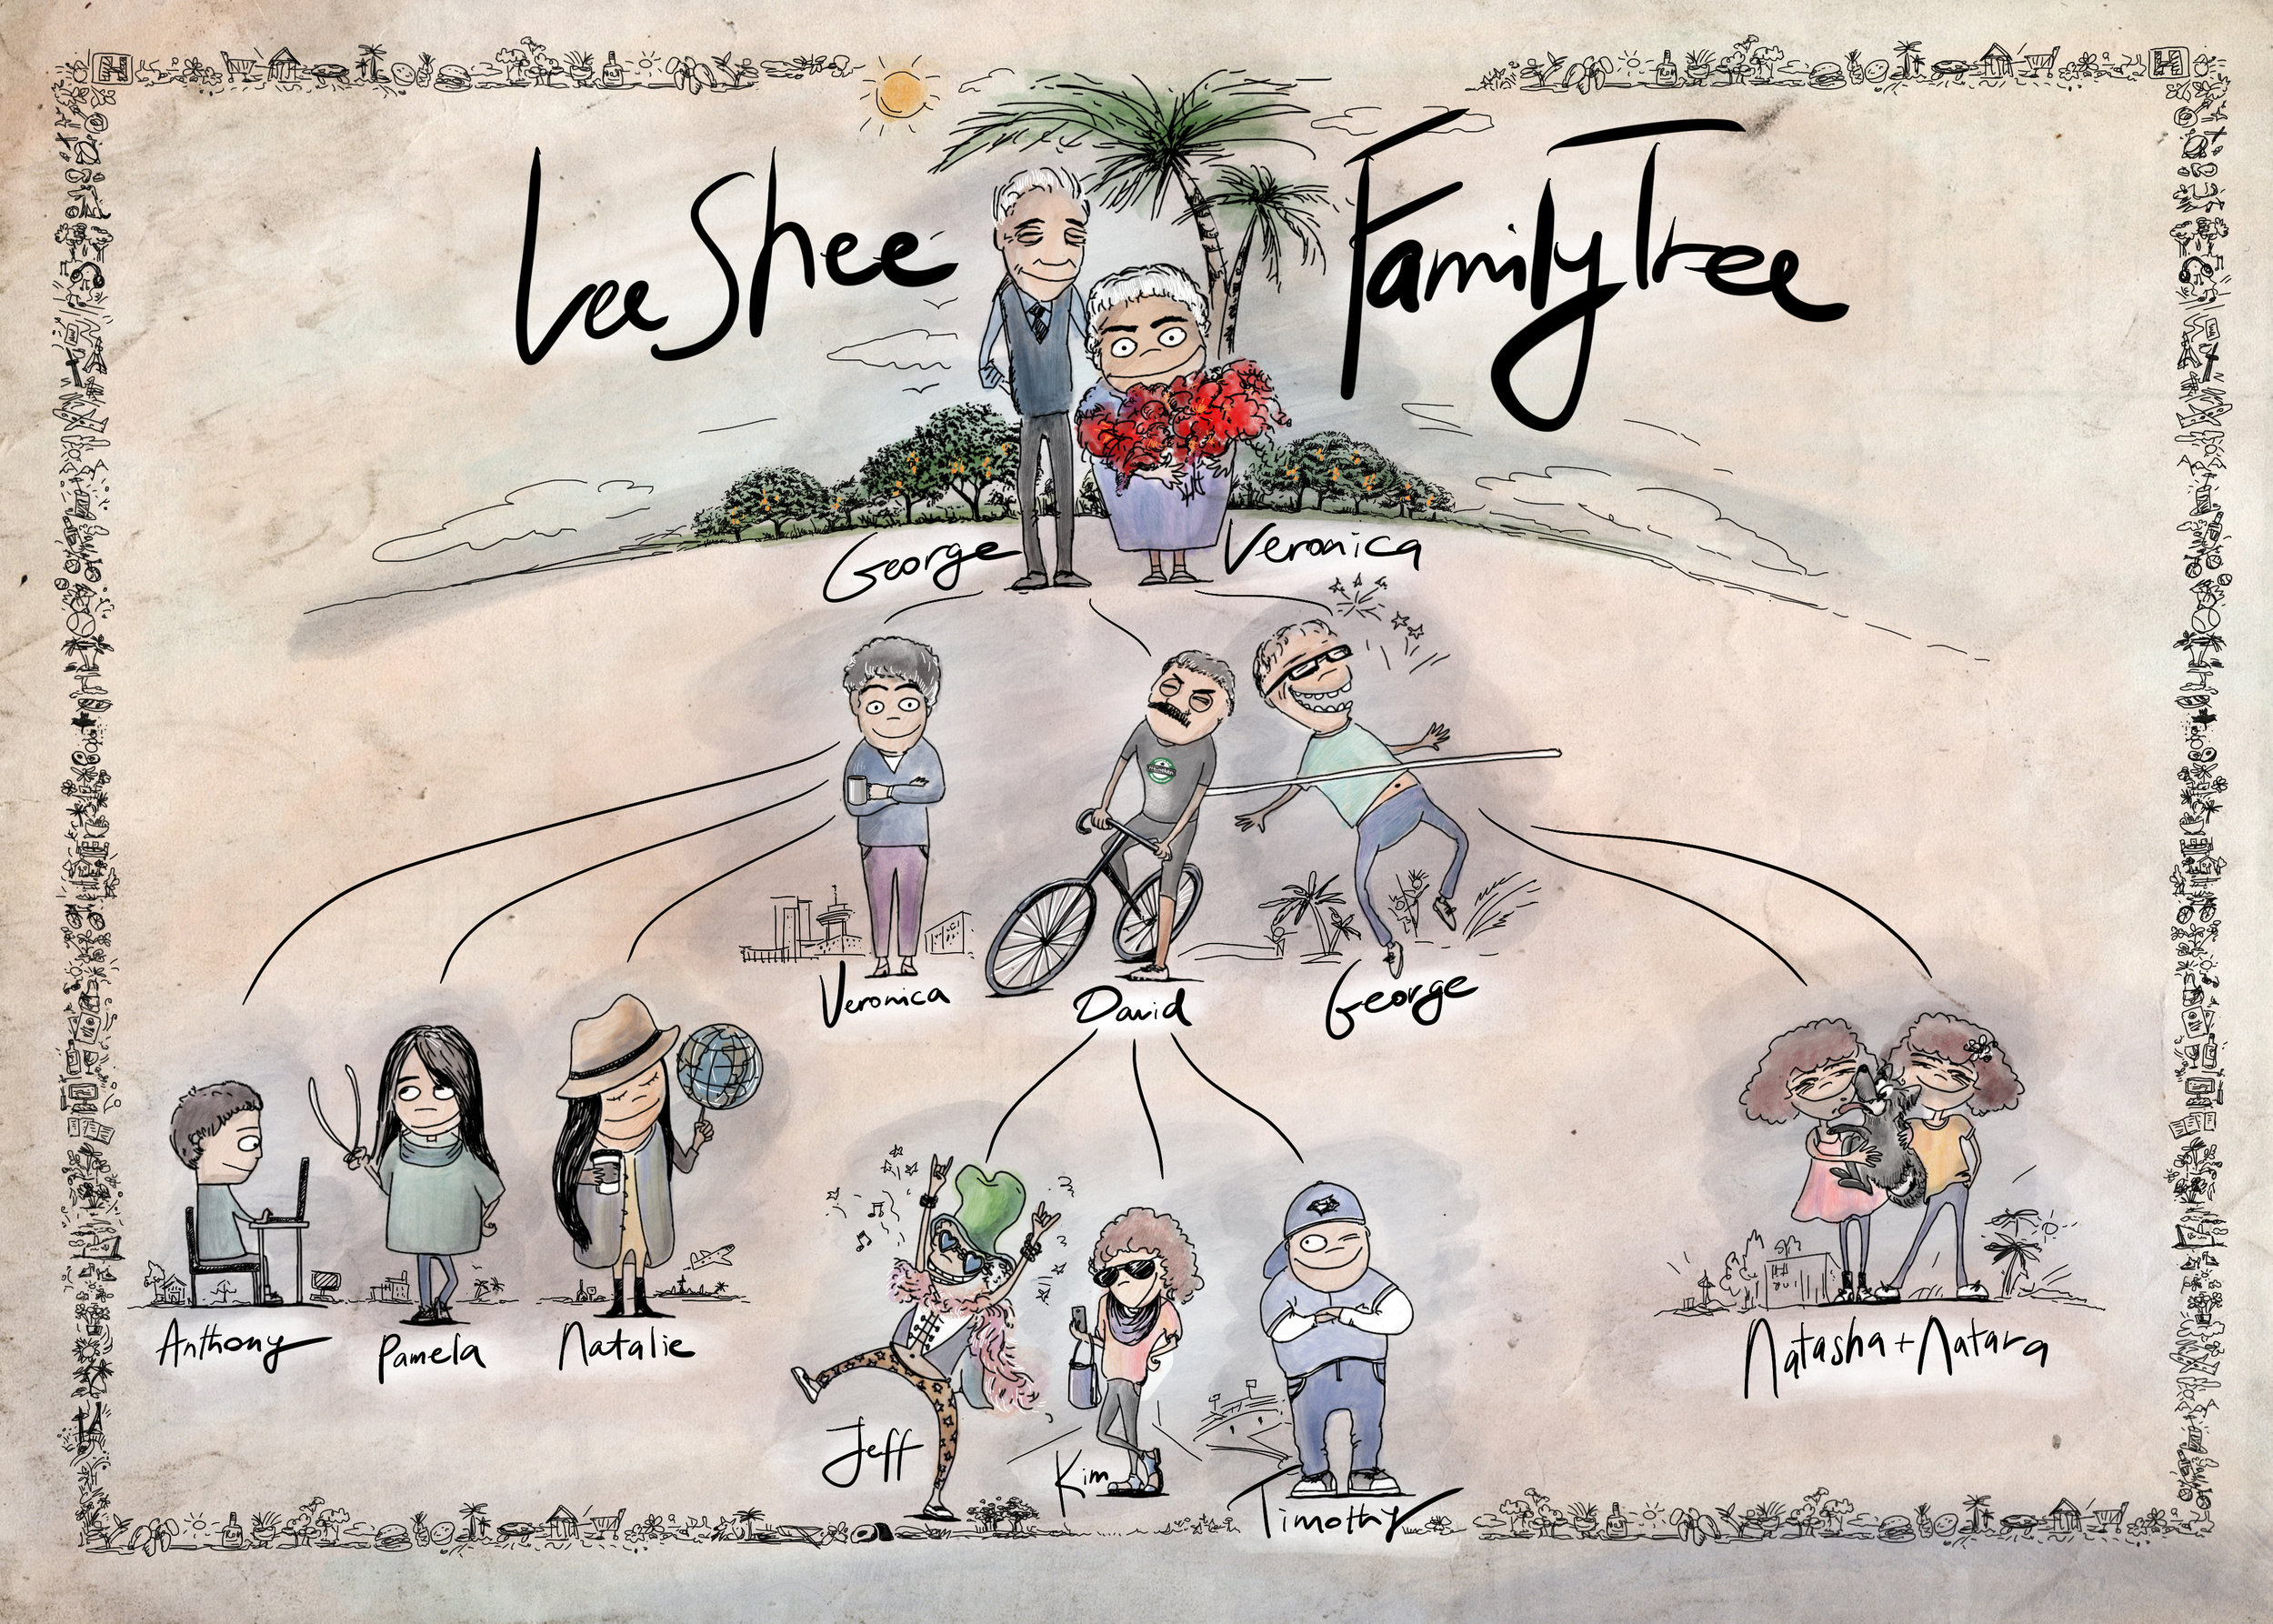 THE LEE SHEE FAMILY TREE